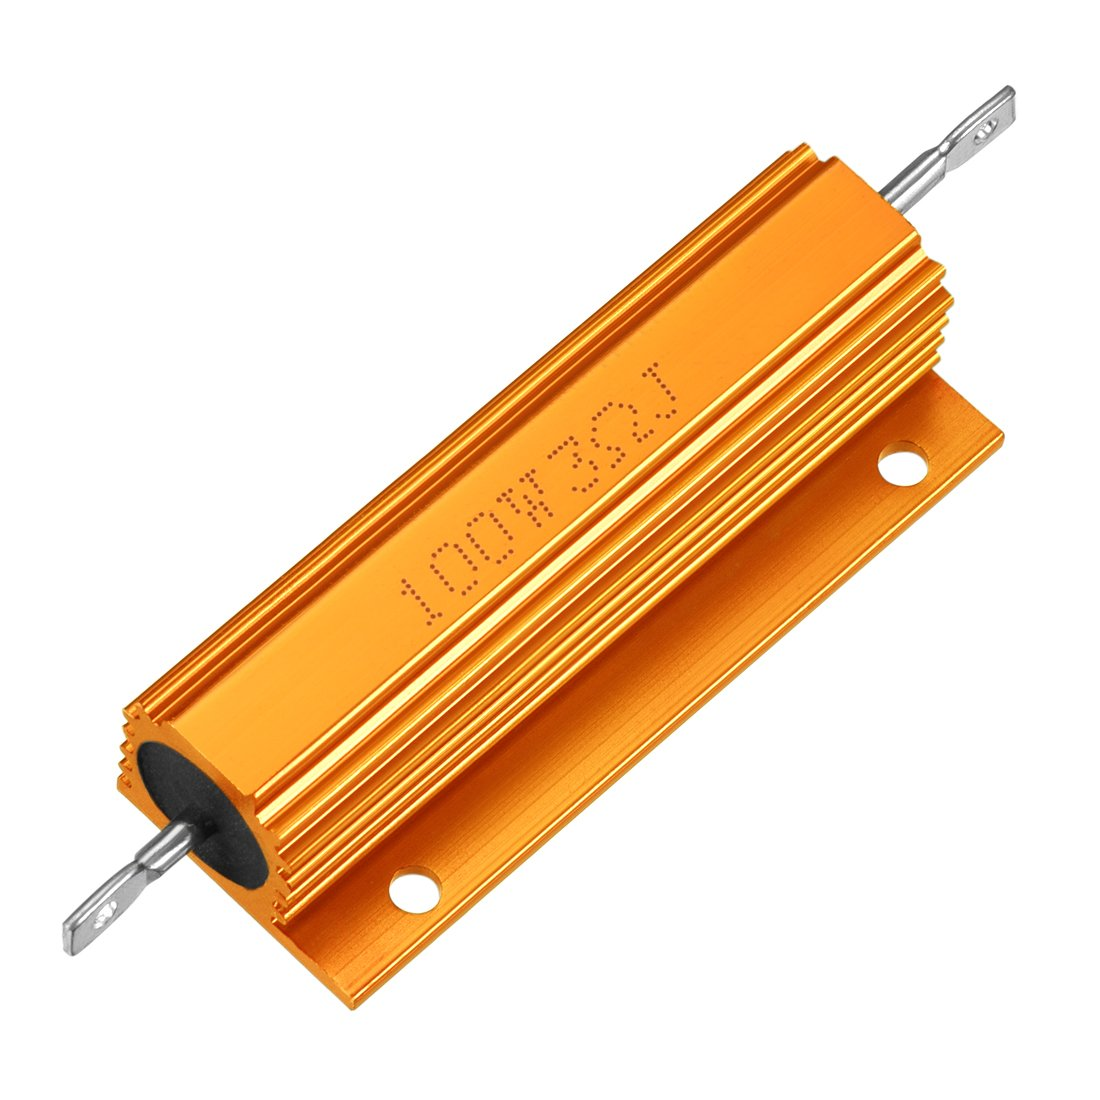 sourcingmap Aluminum Case Resistor 100W 3 Ohm Wirewound Gold for LED Replacement Converter 100W 3RJ a18052500ux0021